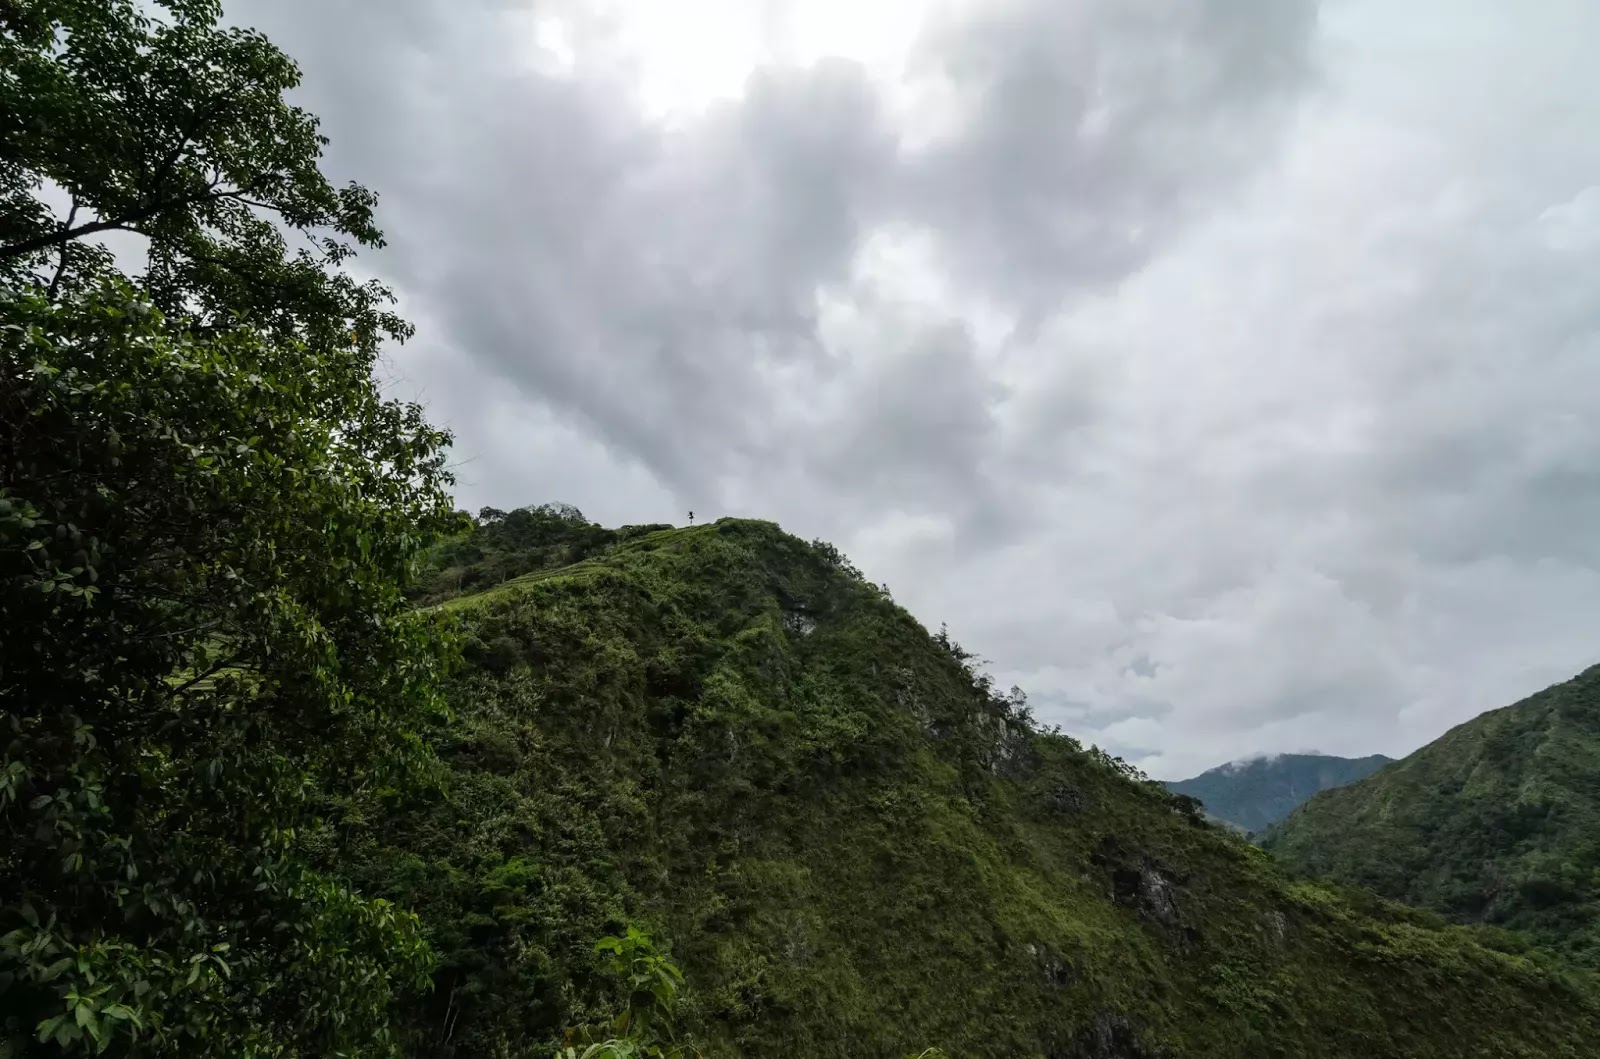 Heavy Cloud No Rain Yet at Batad Rice Terraces ifugao Cordillera Administrative Region Philippines